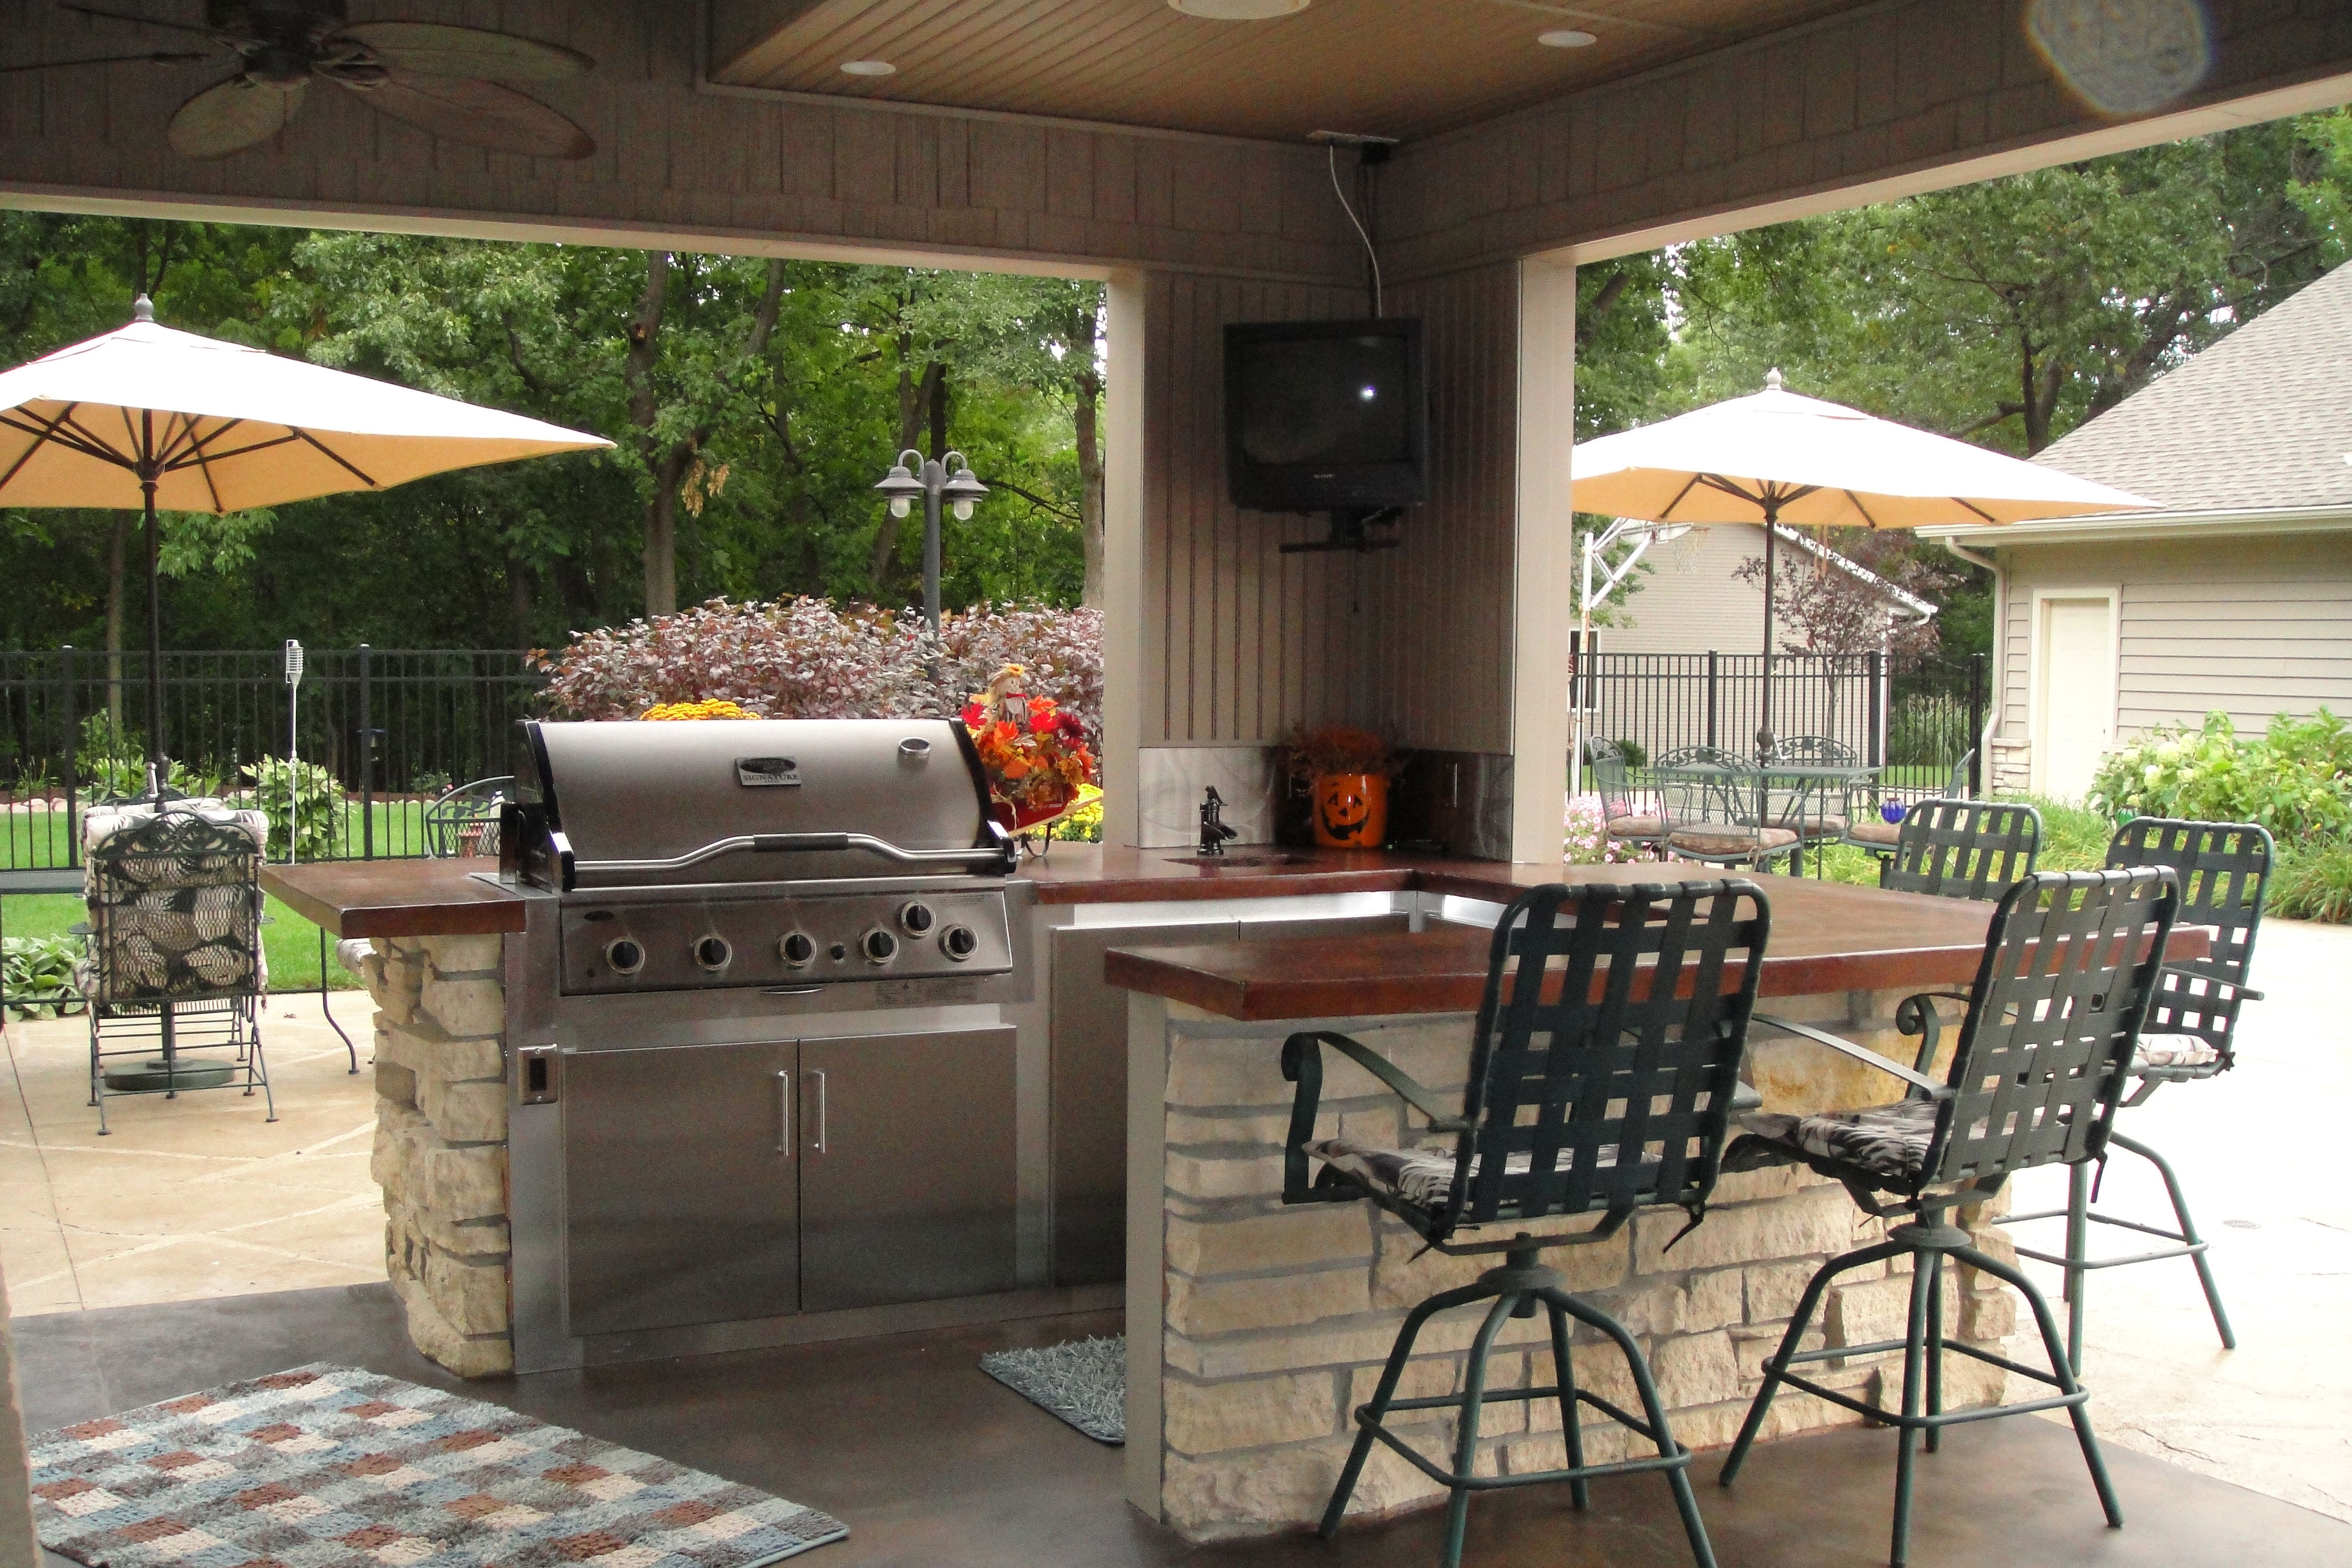 Aside from maintenance-free deck, you can also turn your outdoor living spaces into a kitchen area.